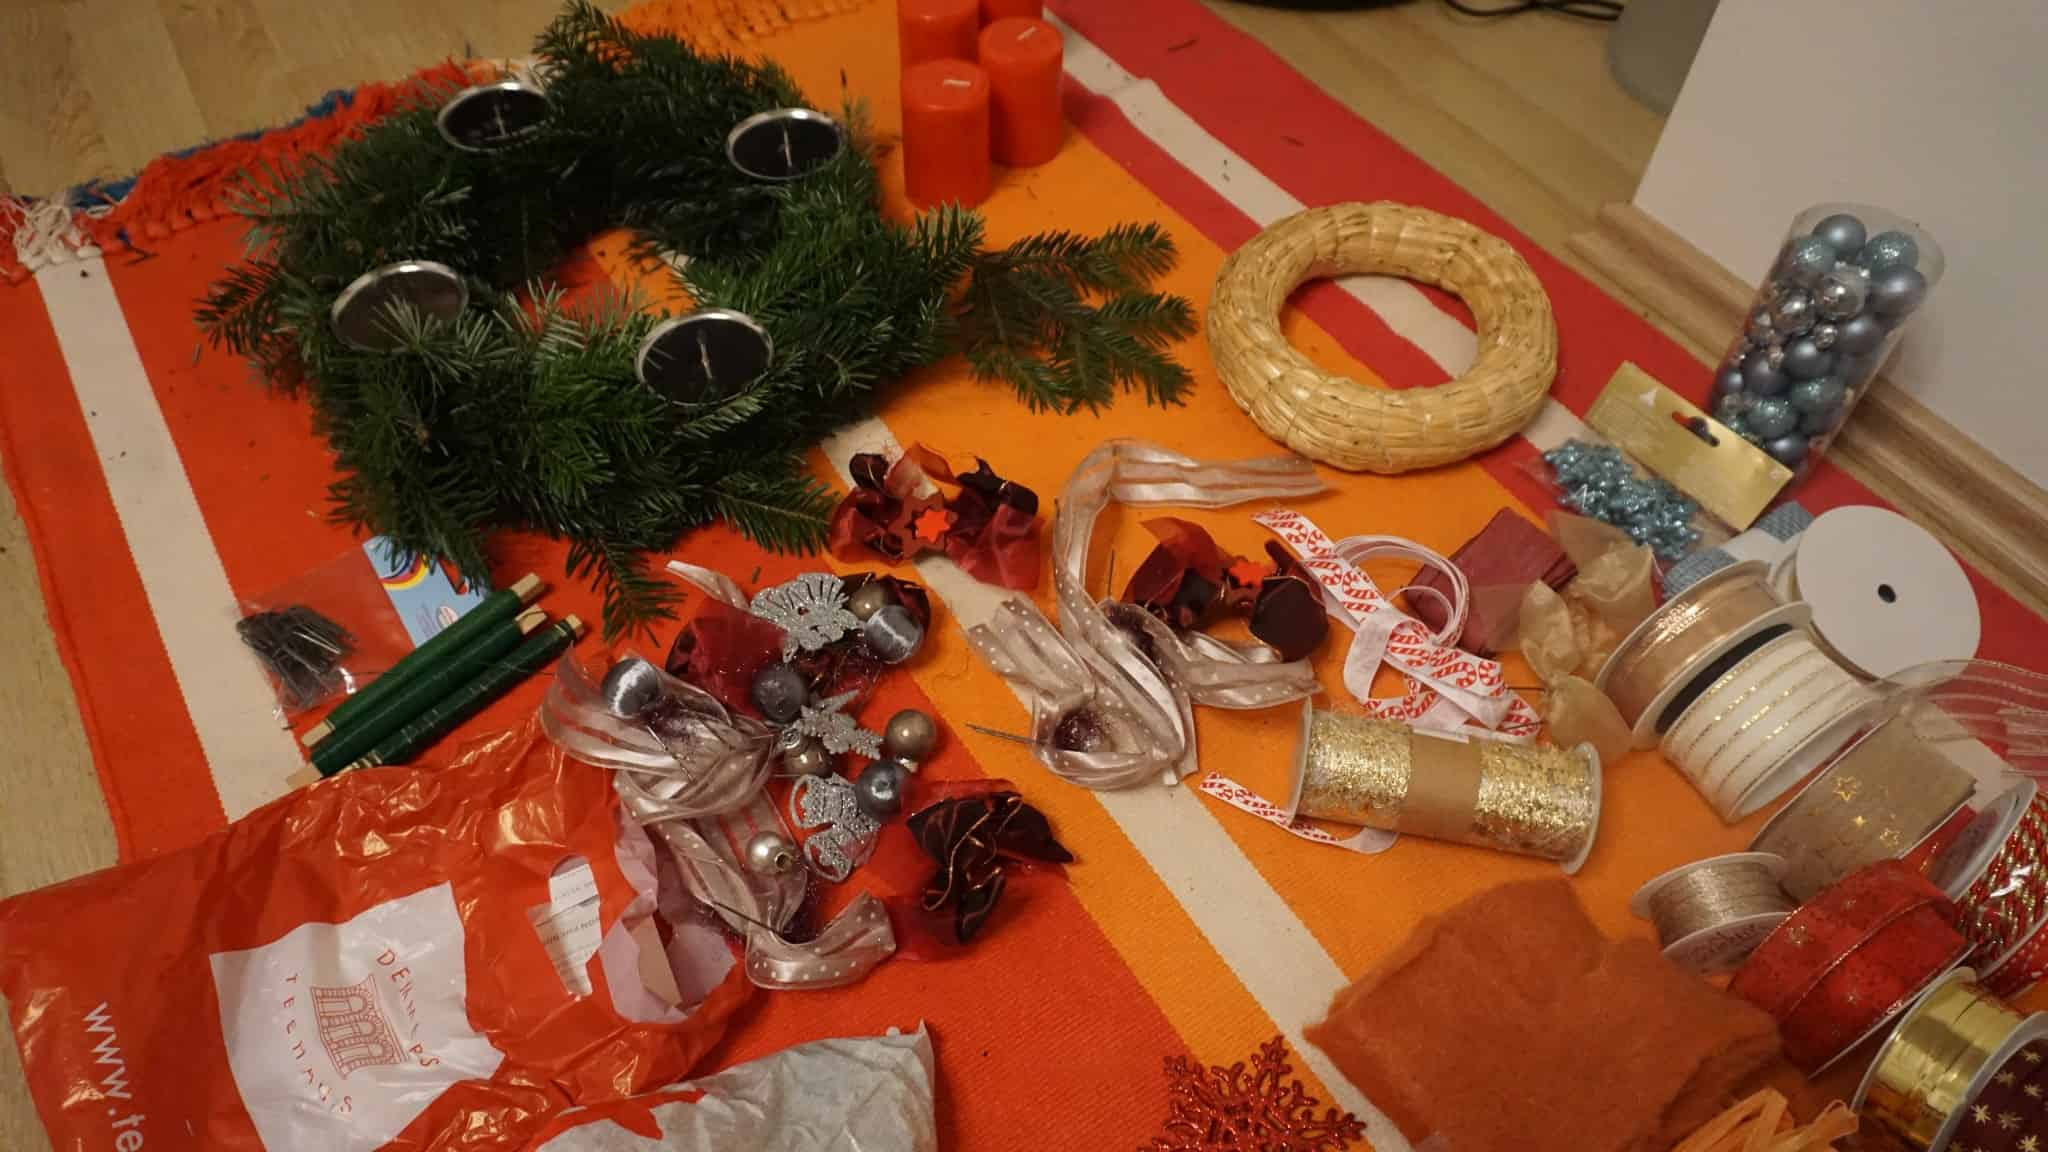 adventkranzbinden3